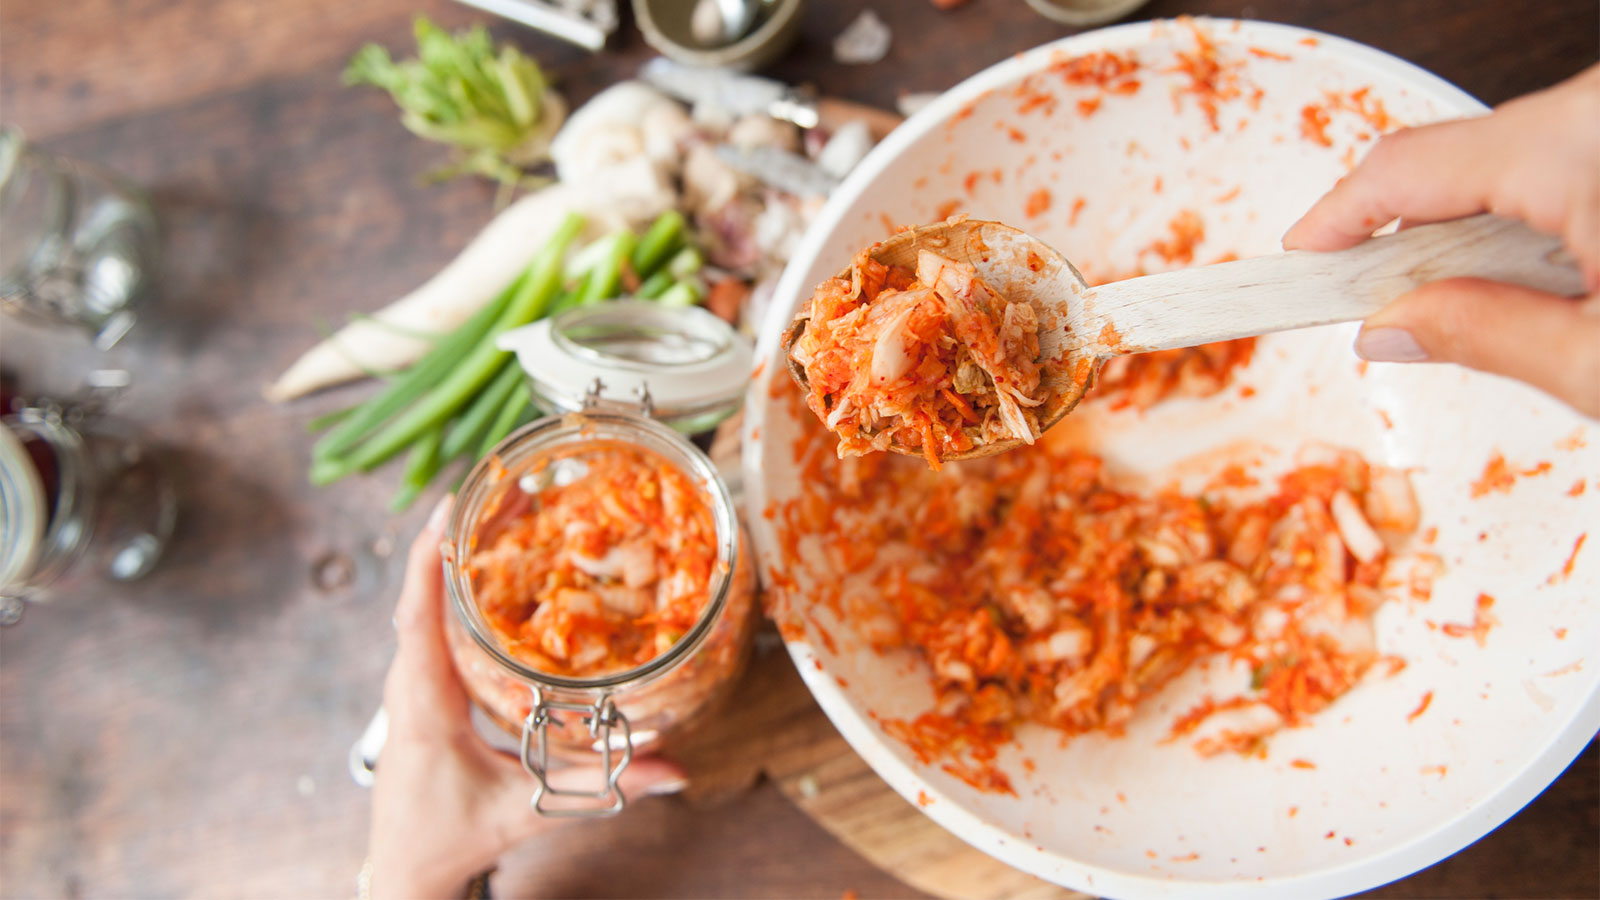 Is Kimchi Good or Bad for You?